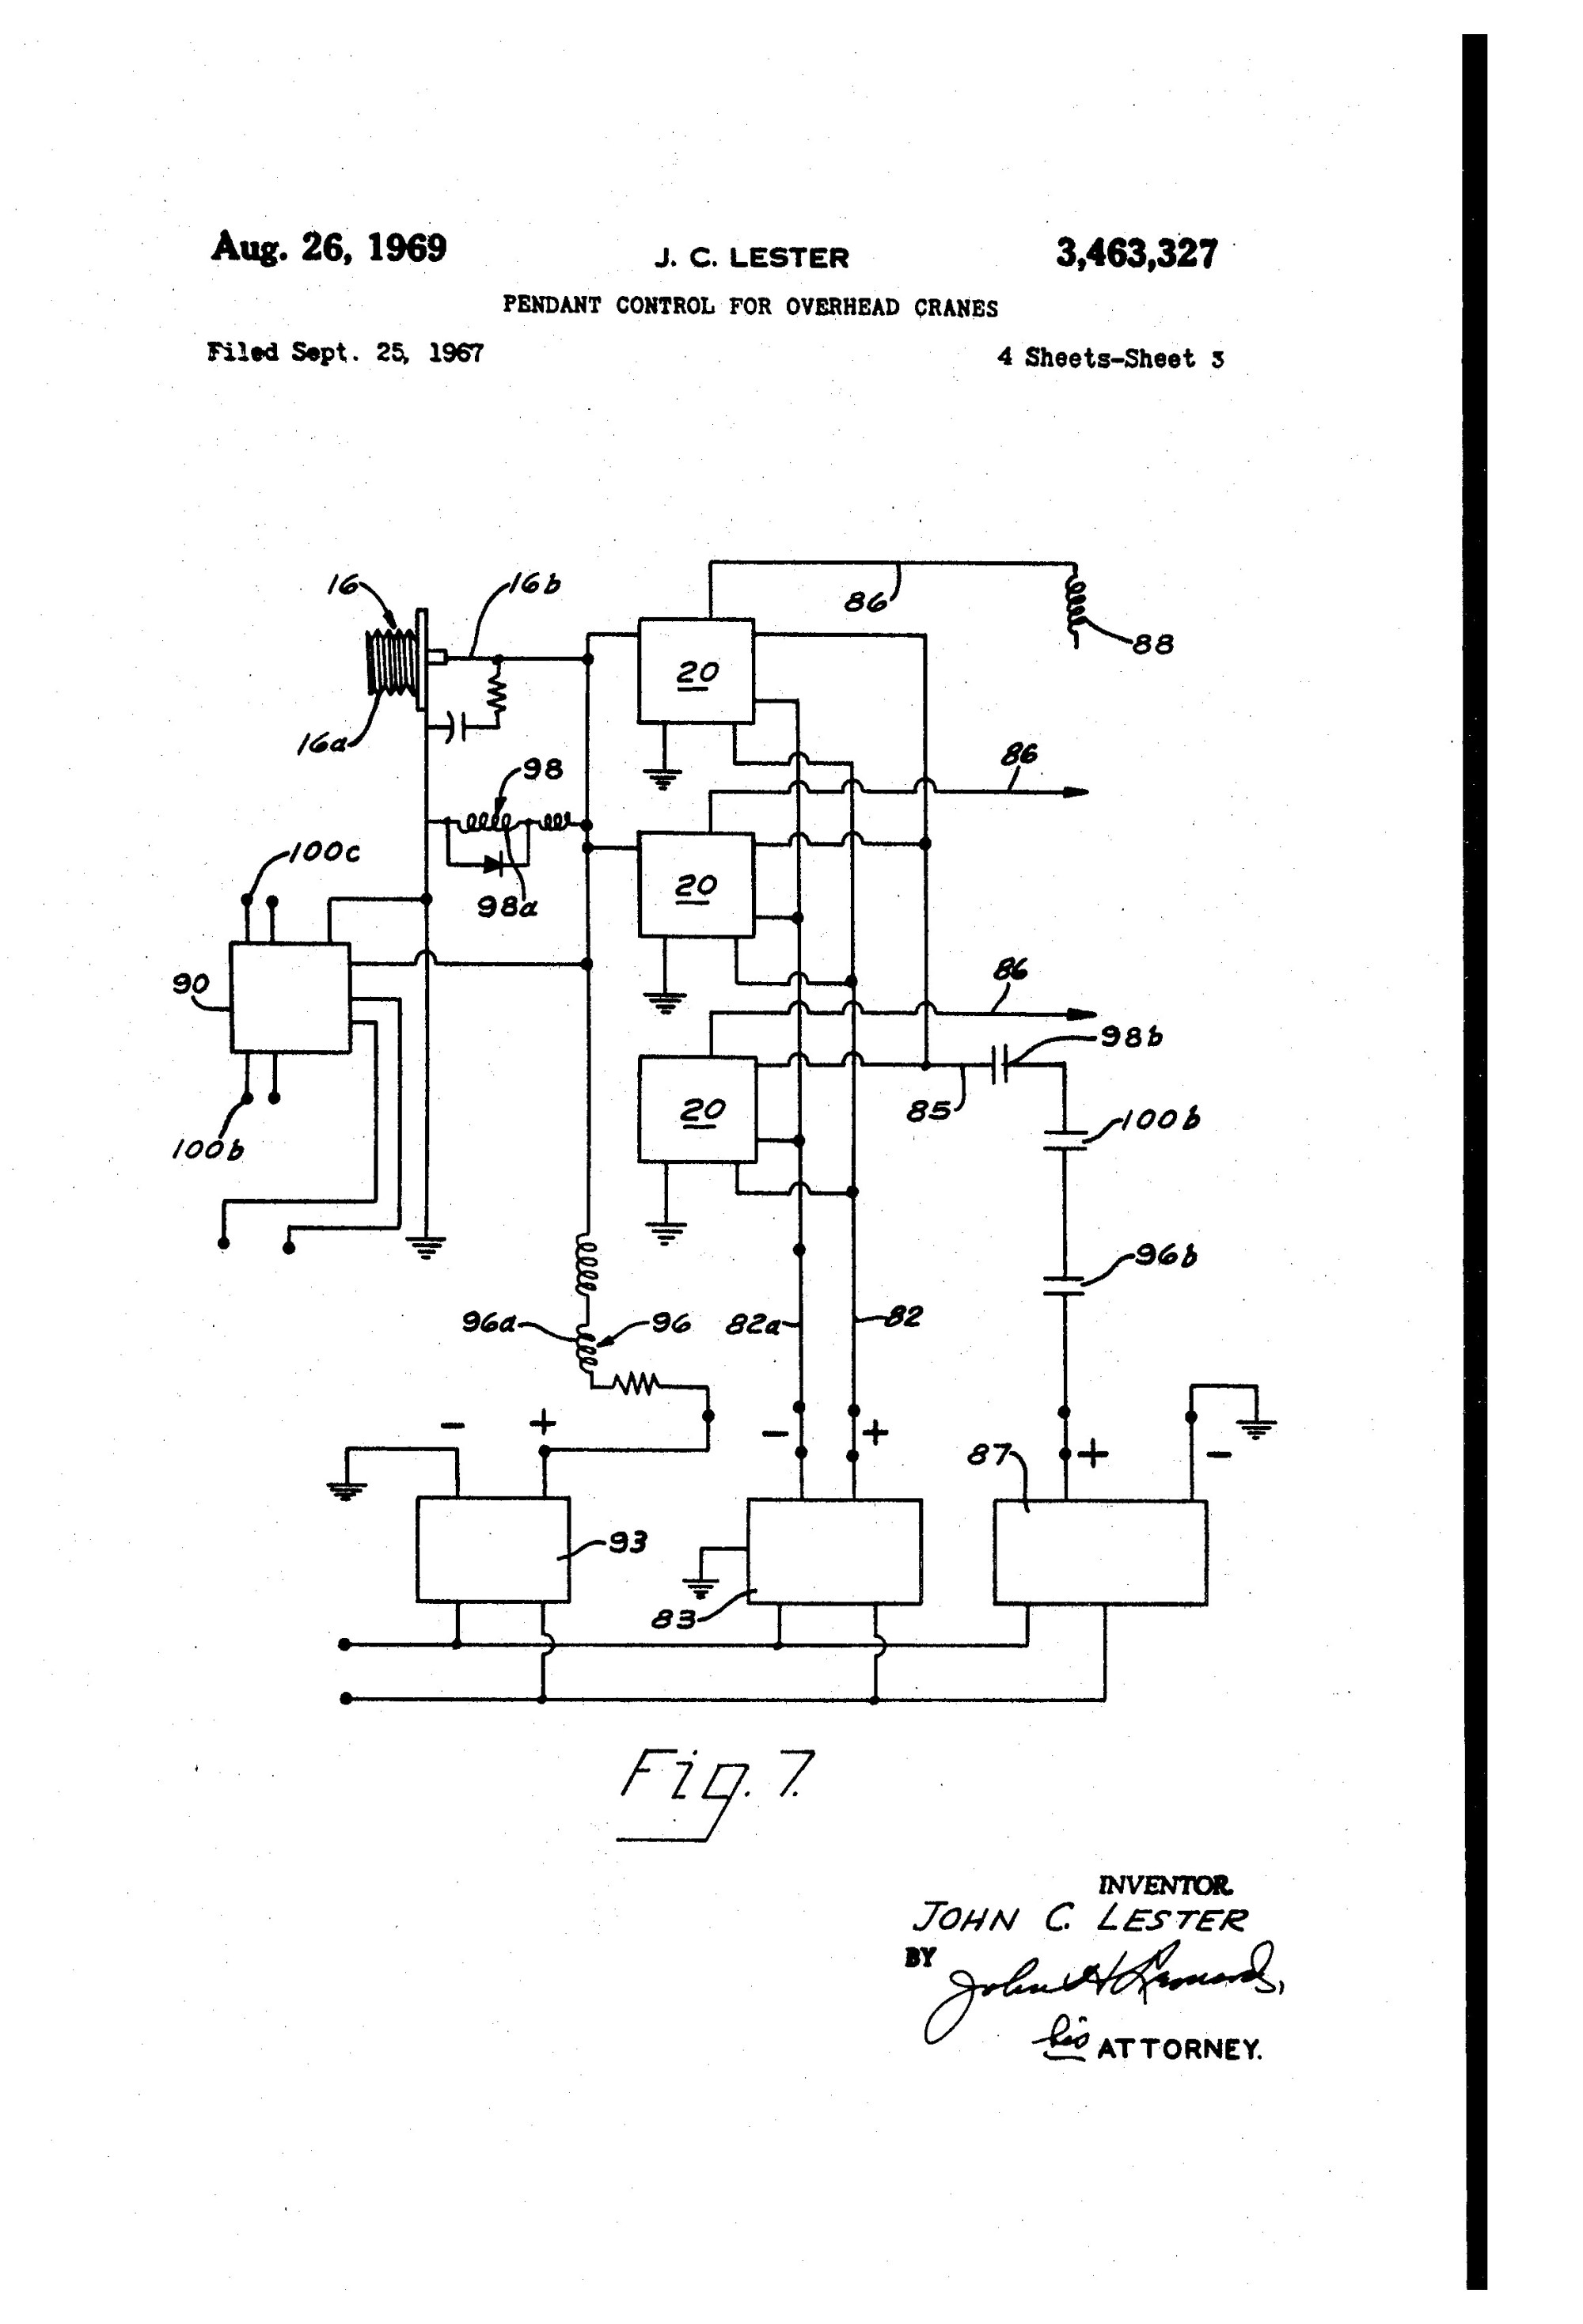 hight resolution of pendent control wiring diagram cm wiring diagram for you cm wiring diagram schematic